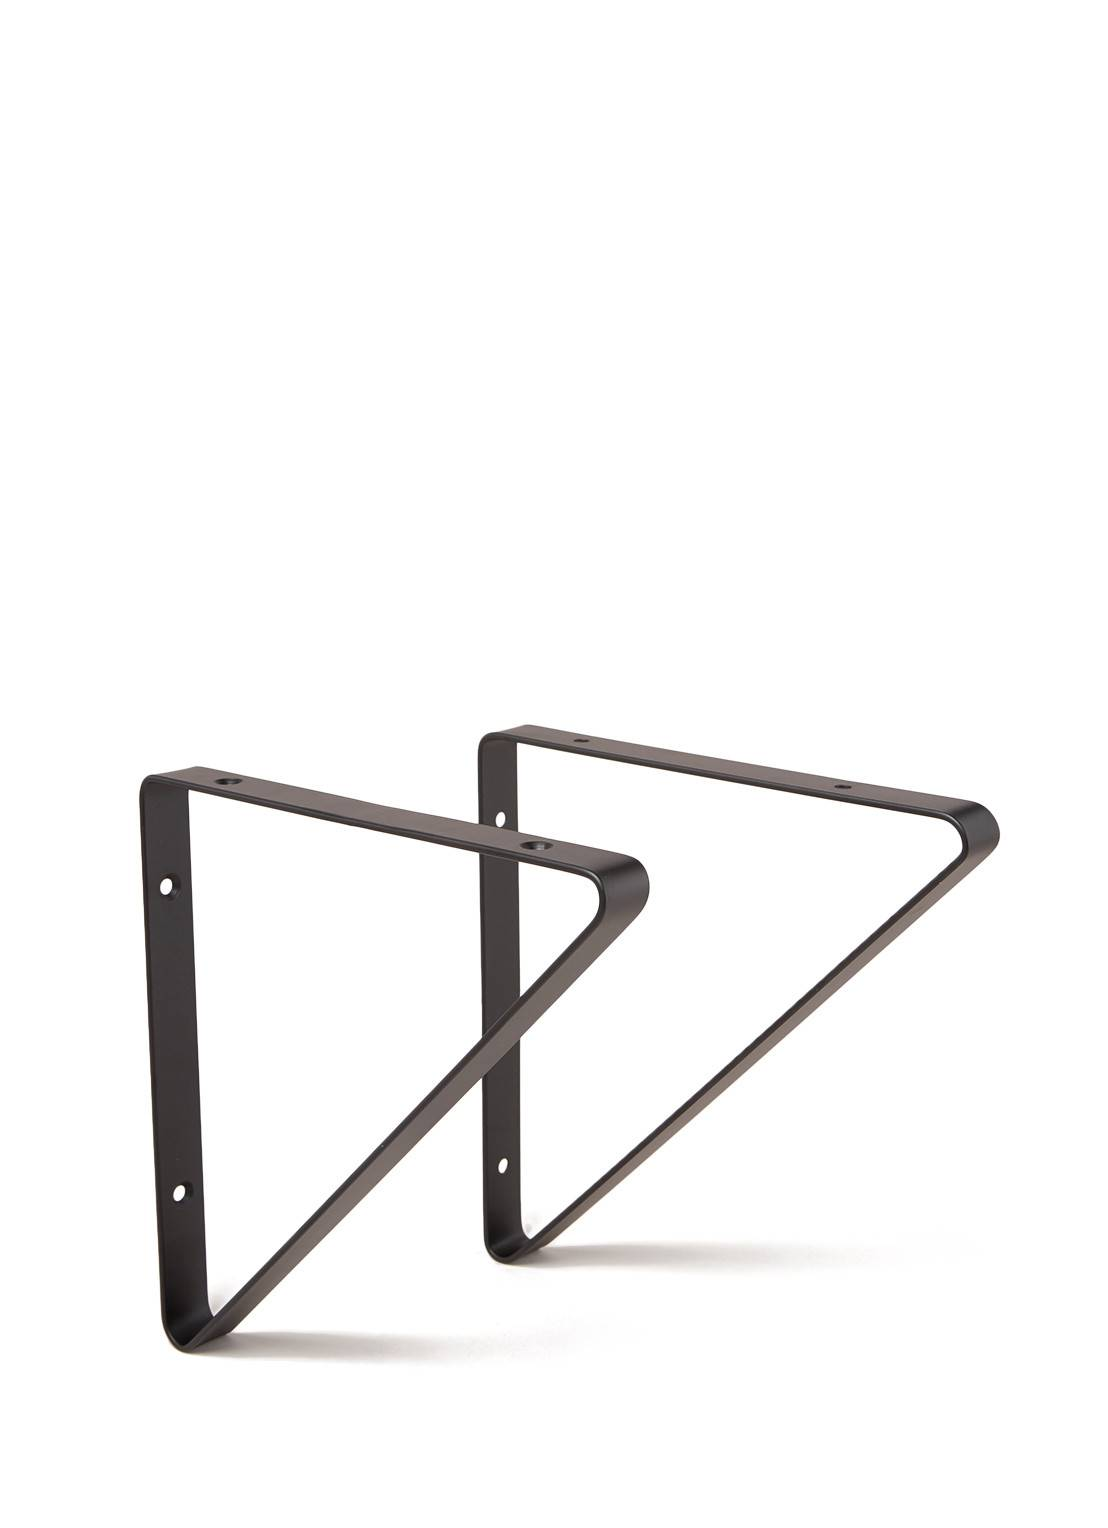 ferm living Support d'étagère 24,5 cm lot de 2 - Noir